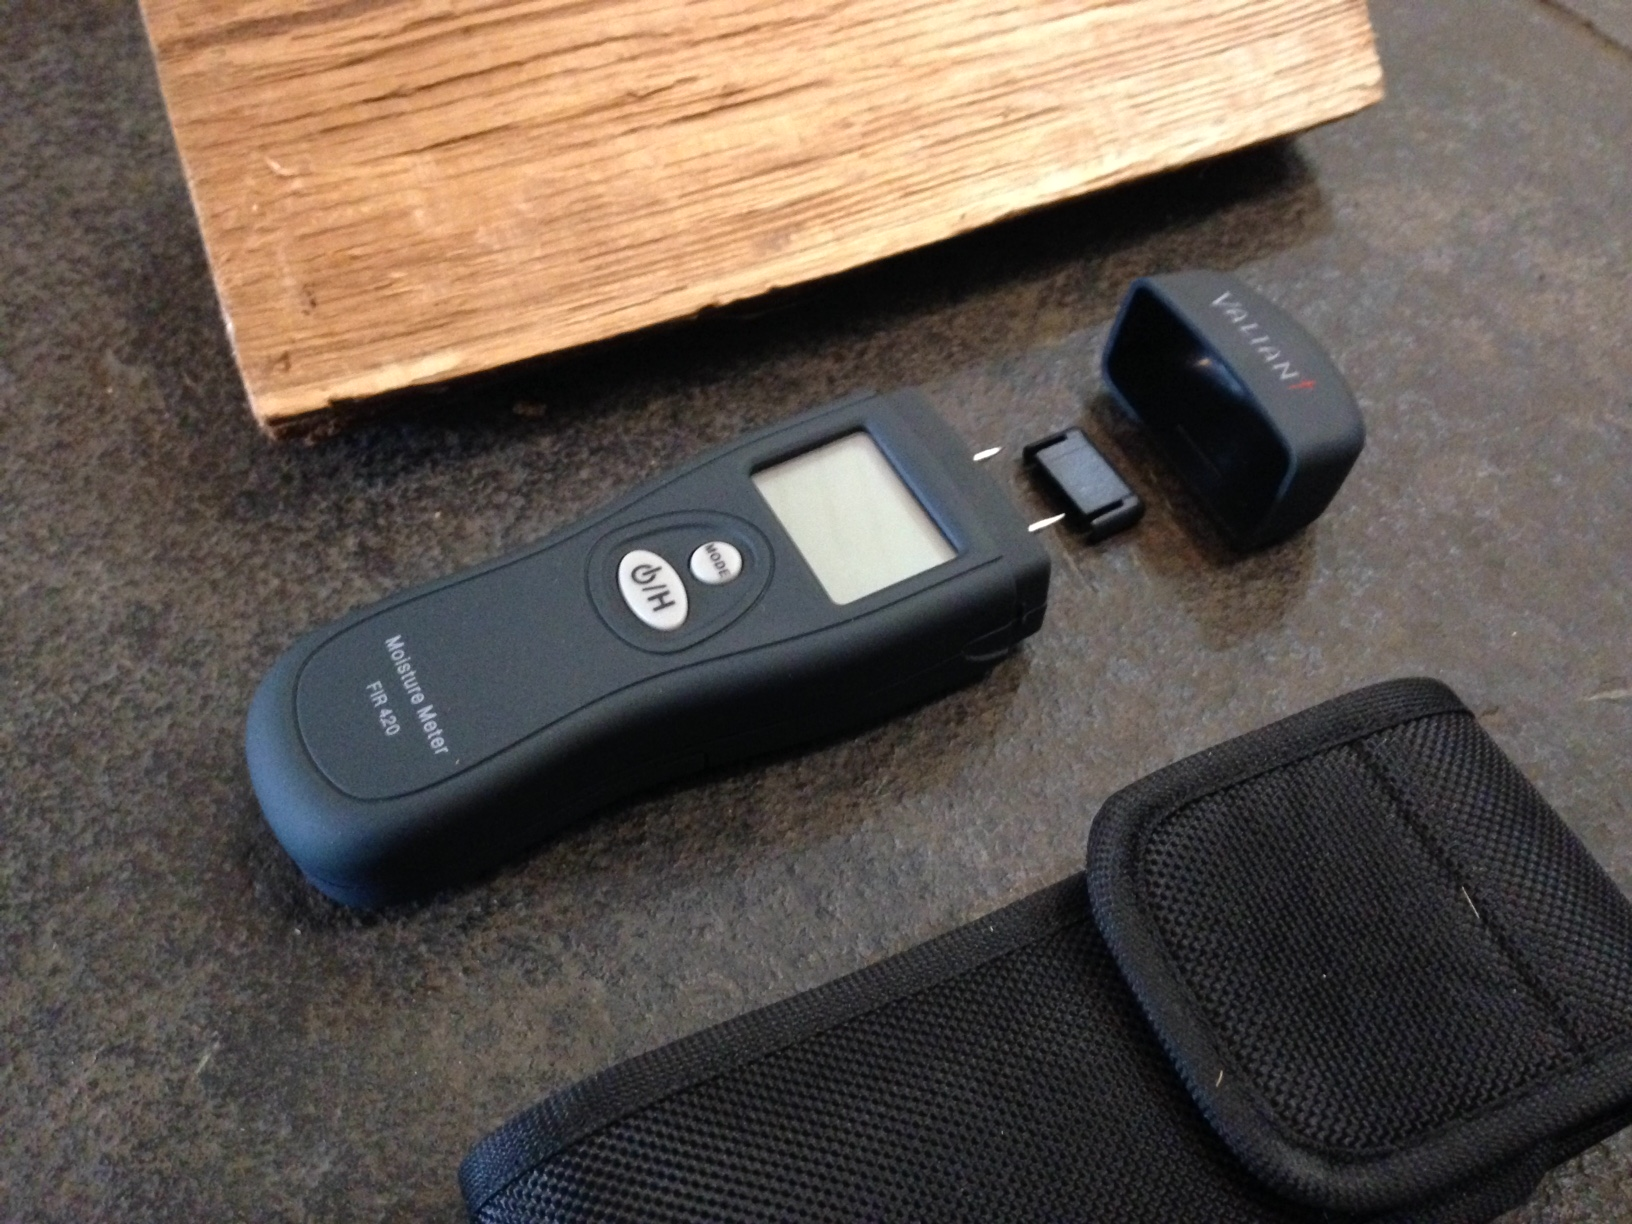 Moisture meters a must for wood burners!